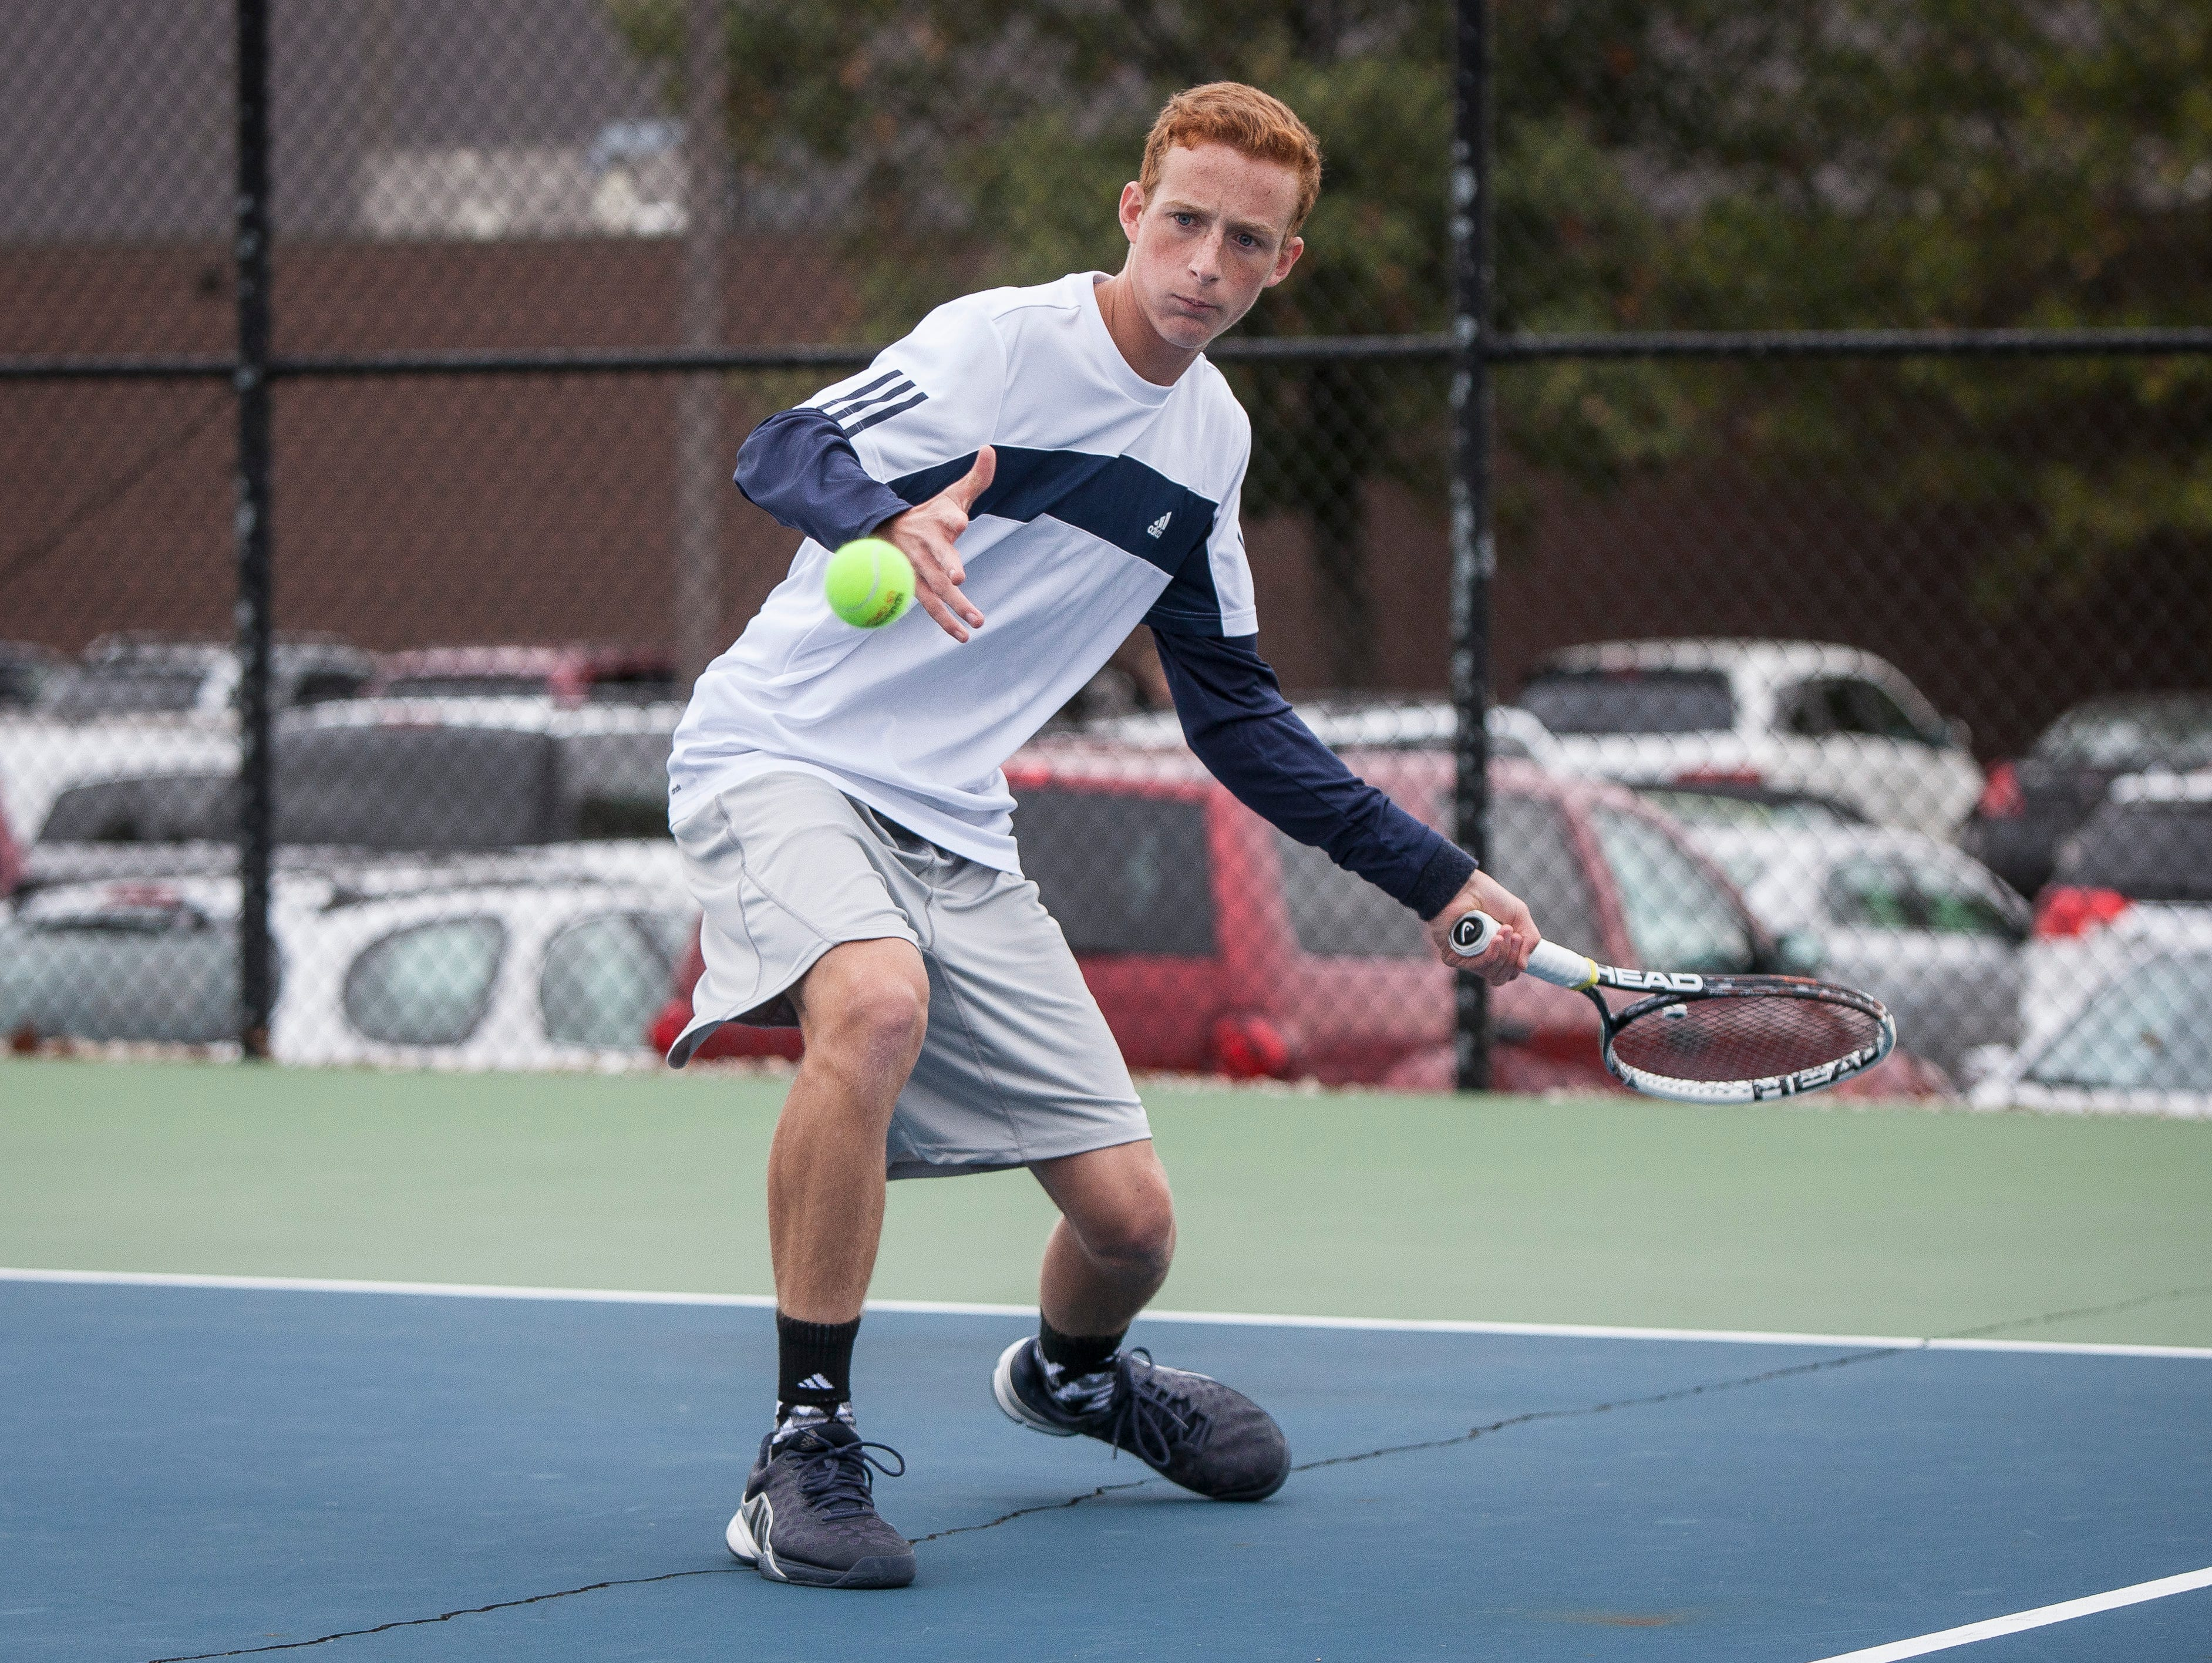 Delta's Jason Wegener is locked in a volley with his Yorktown opponent Thursday evening at the tennis sectional held at Delta High School. Delta won the sectional 4-1.